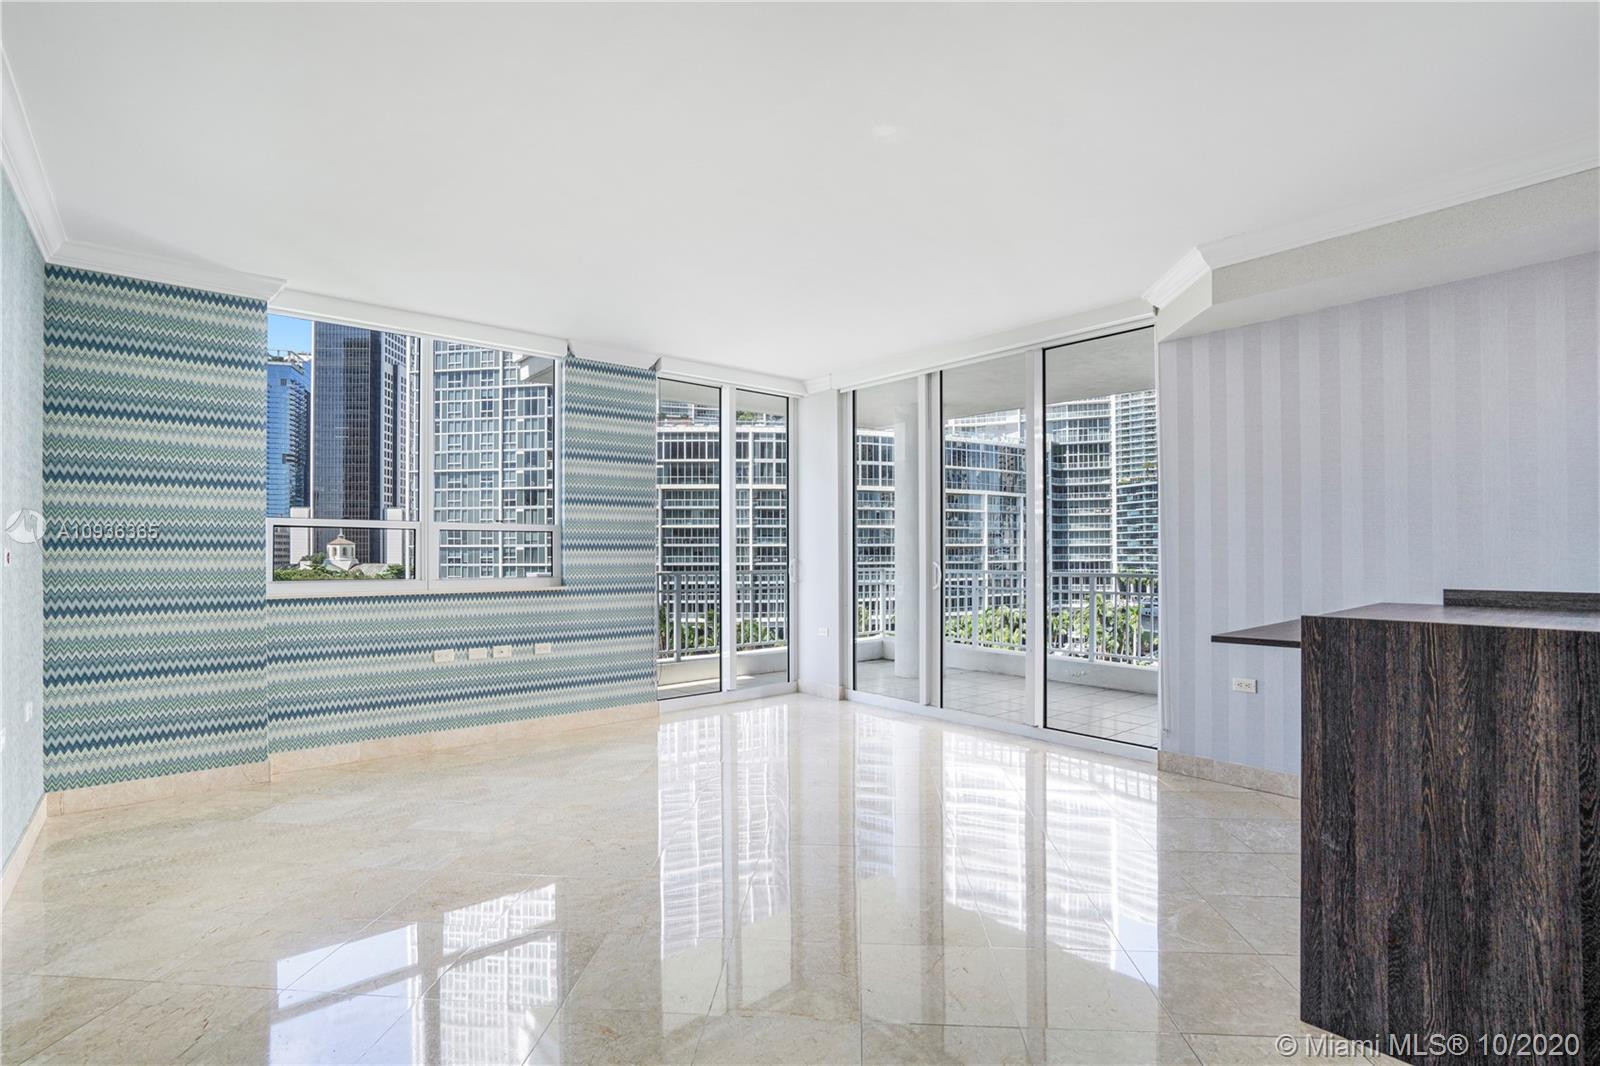 Brickell Key is the best location Brickell has to offer. Walking distance to Brickell City Center an